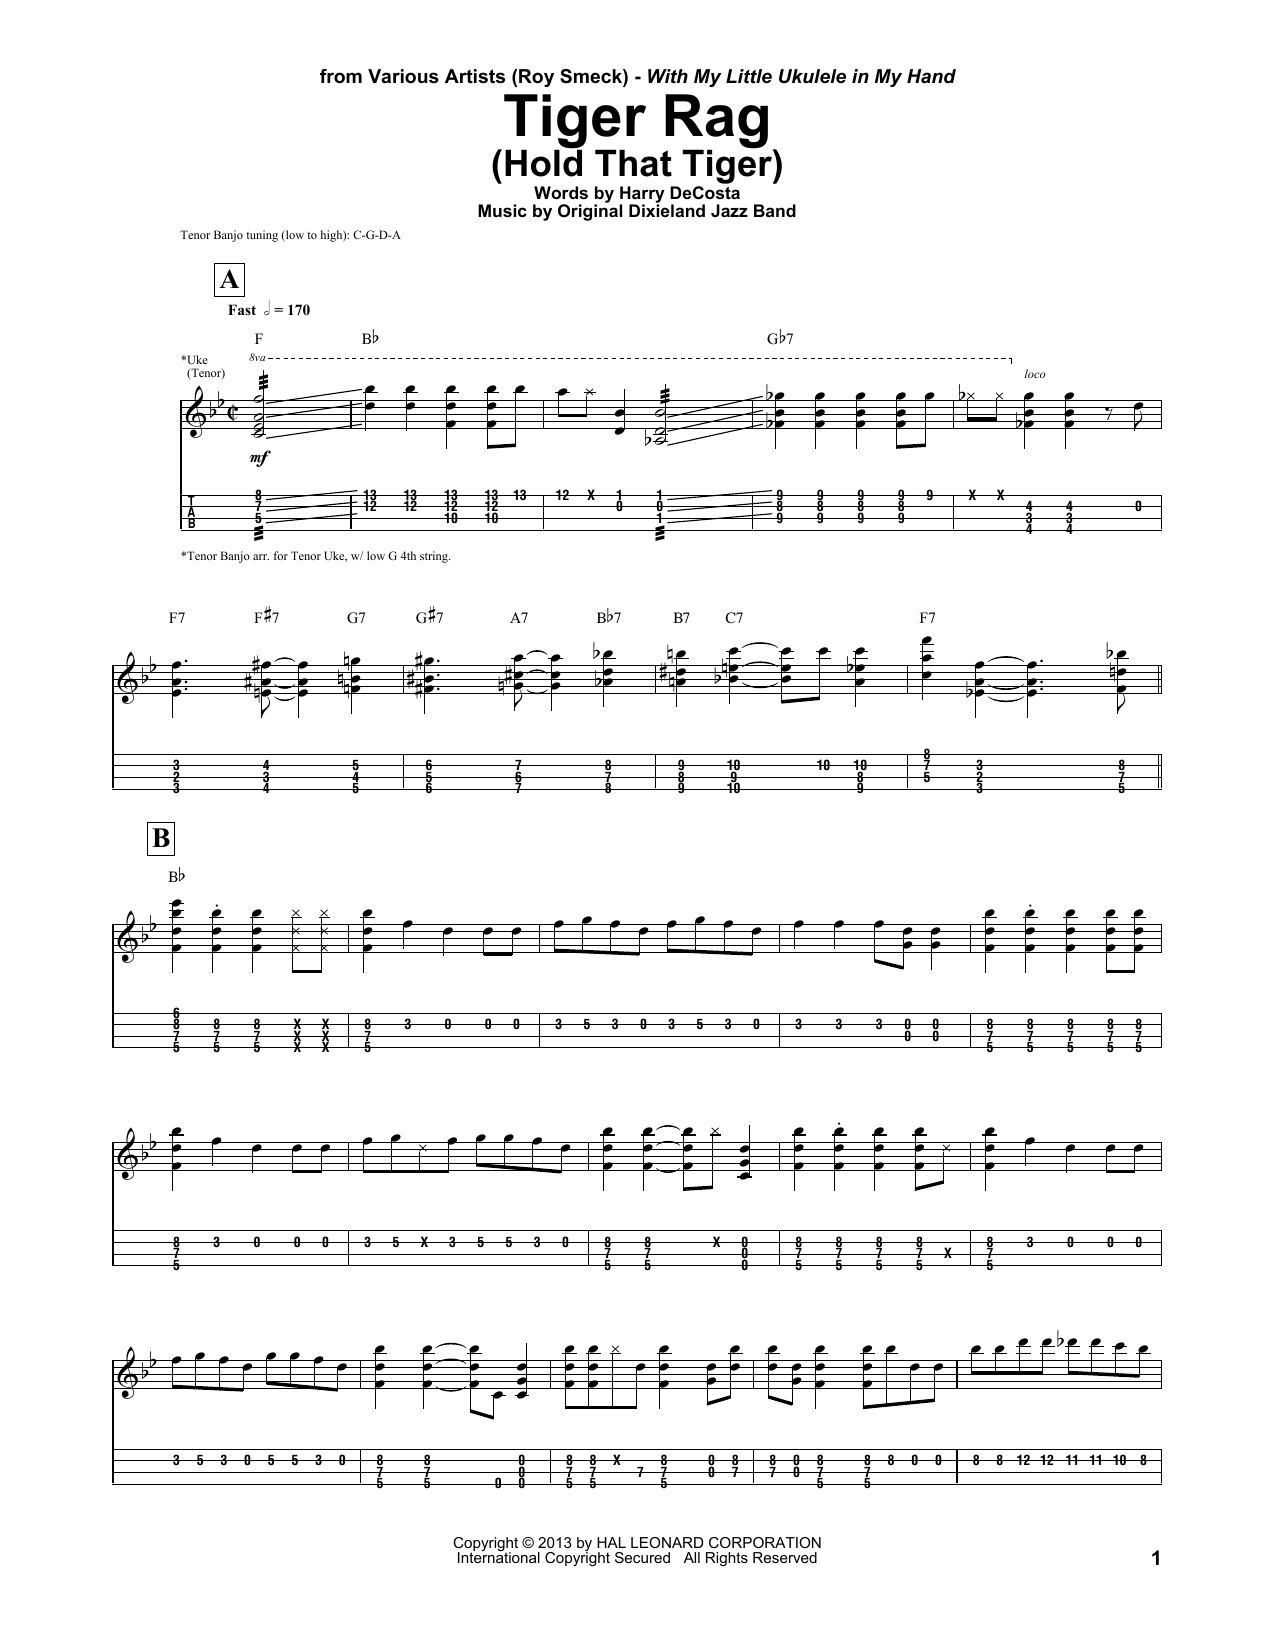 Roy Smeck Tiger Rag (Hold That Tiger) sheet music notes and chords. Download Printable PDF.